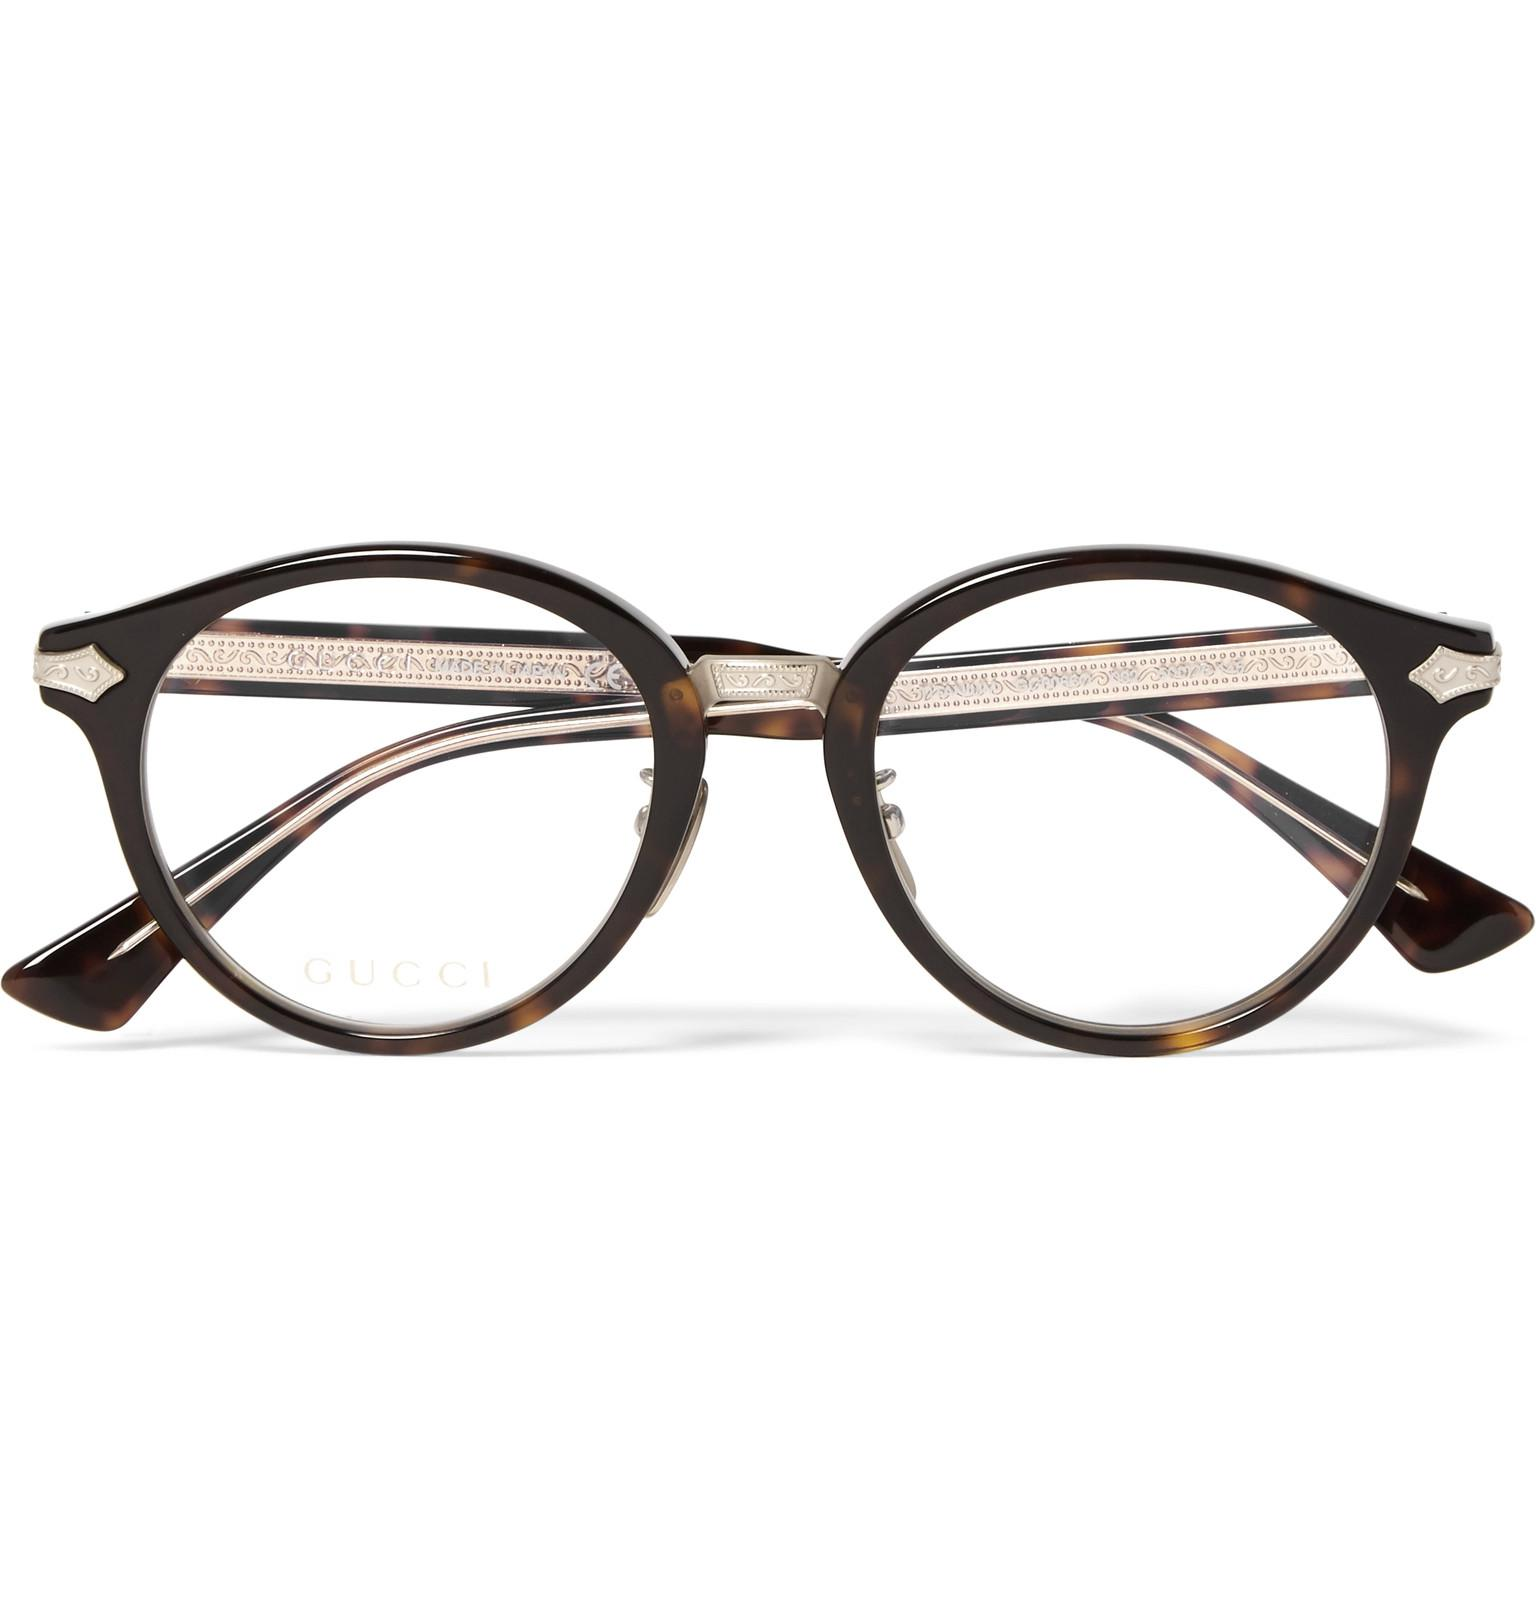 14a3035df3 Gucci Round-frame Tortoiseshell Acetate And Gold-tone Optical ...